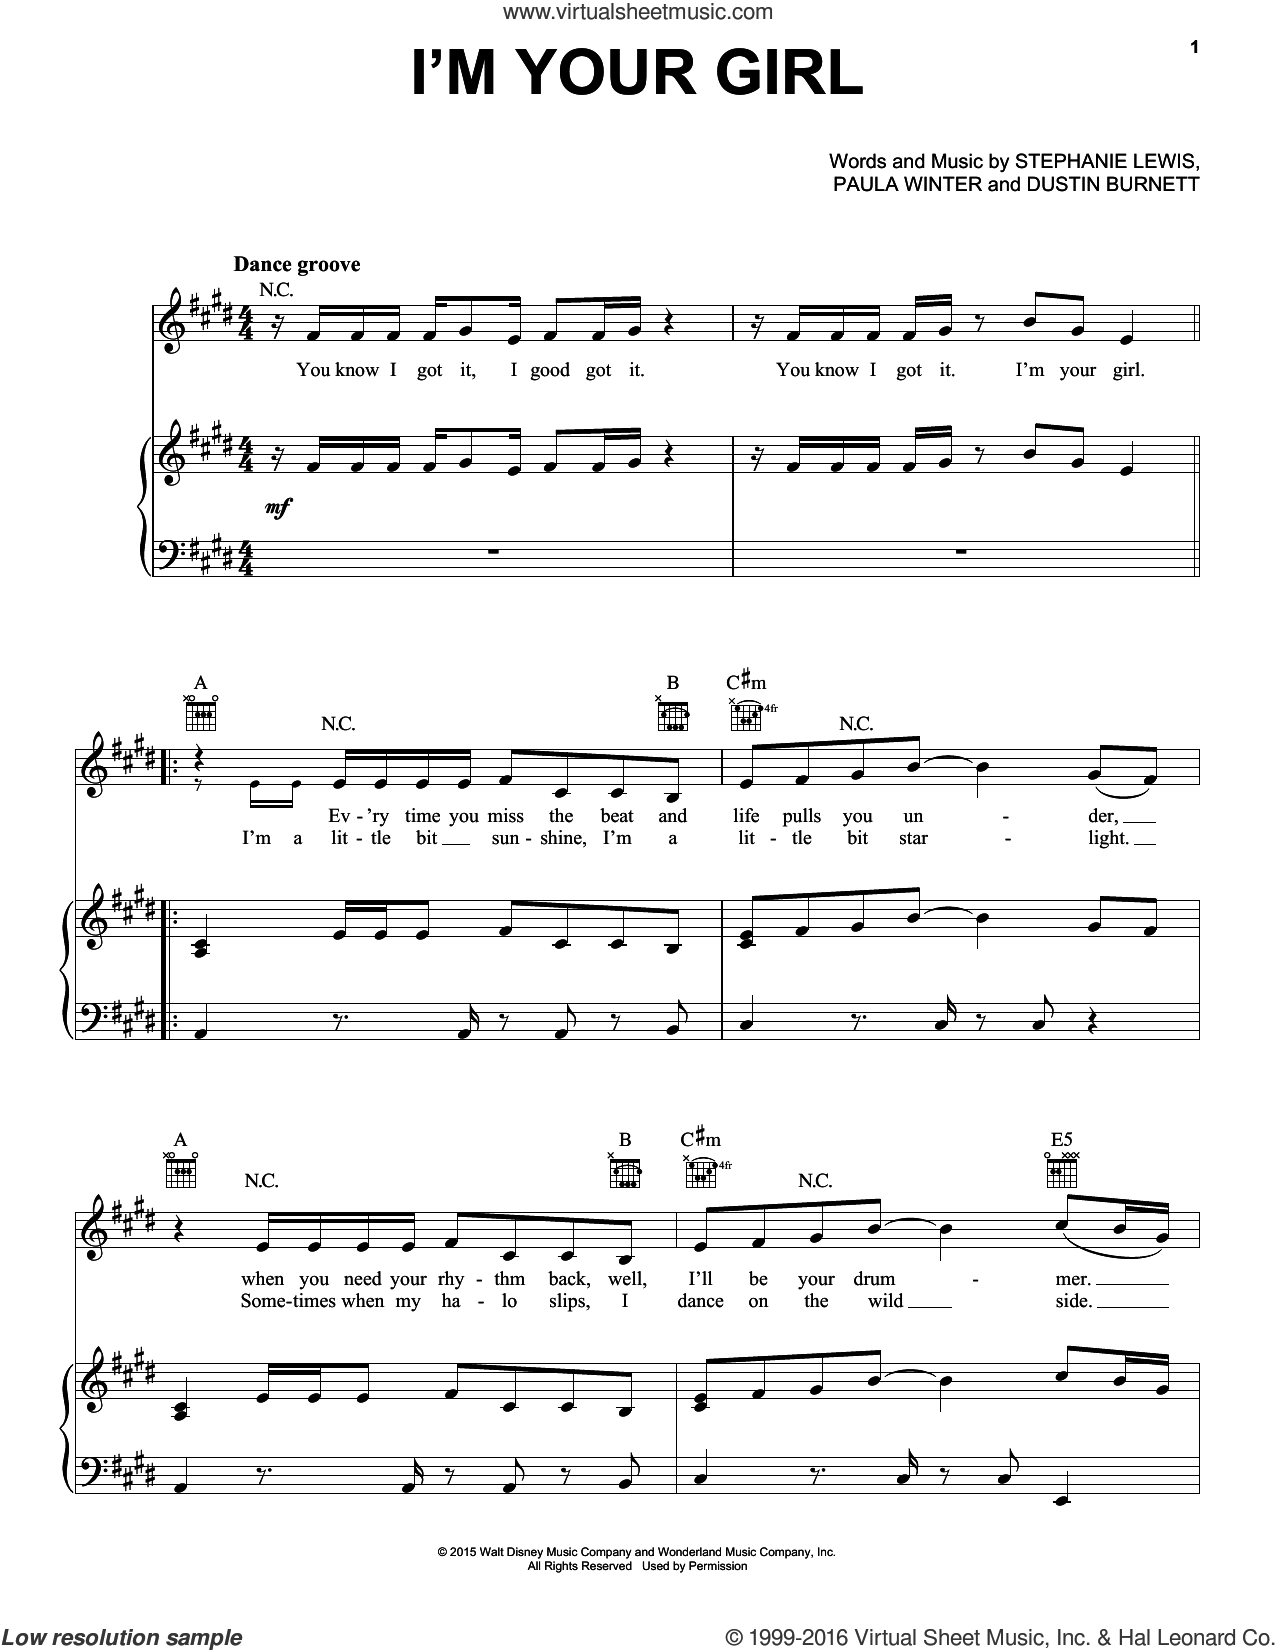 I'm Your Girl sheet music for voice, piano or guitar by Felicia Barton, Dustin Burnett, Paula Winger and Stephanie Lewis, intermediate skill level